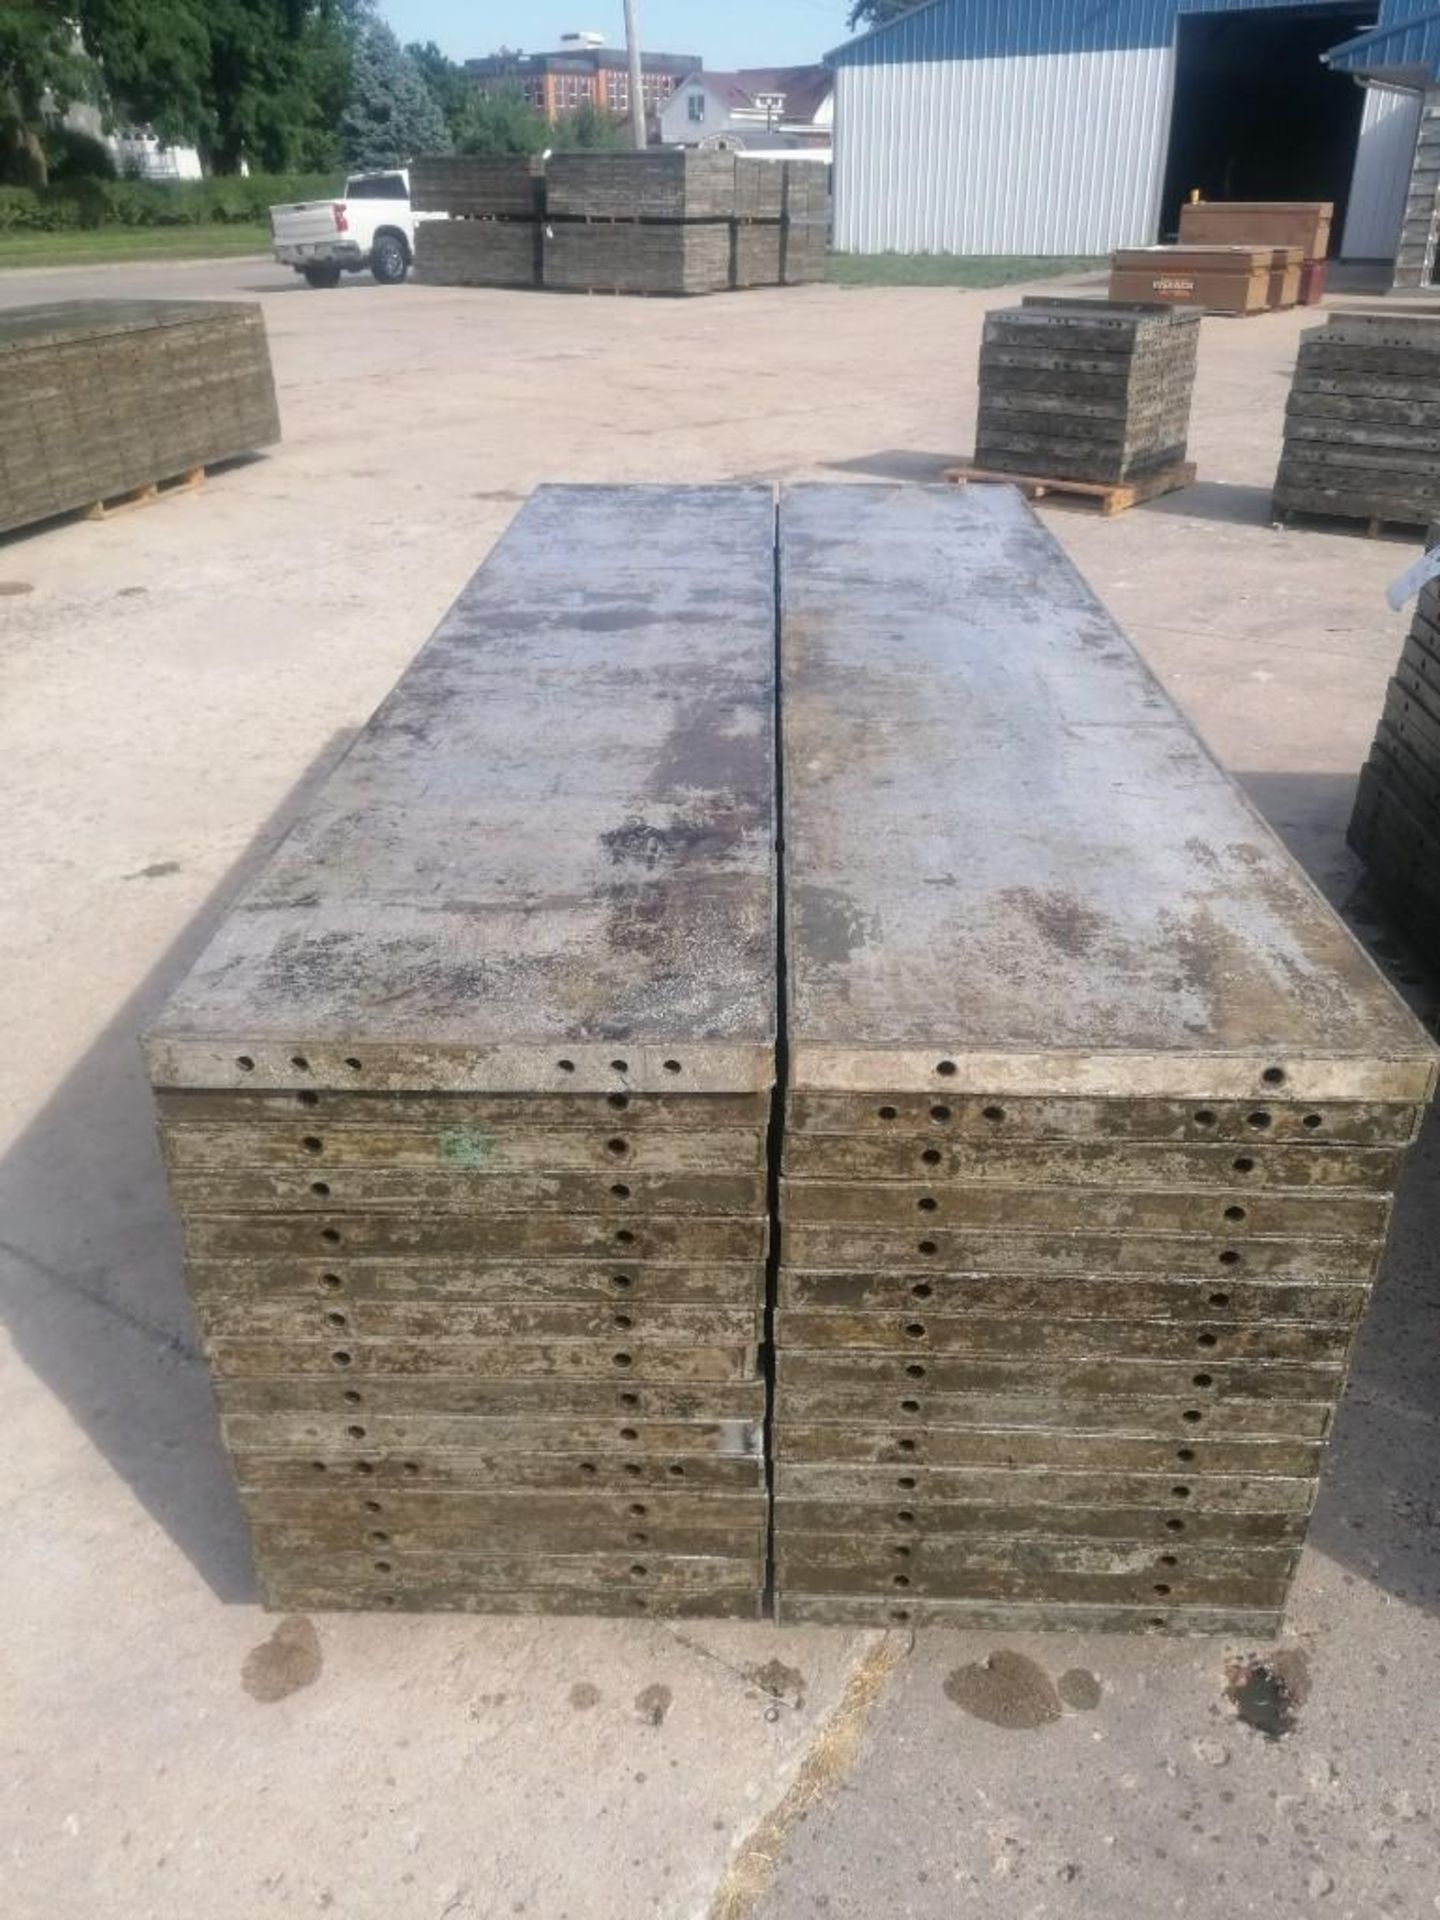 Lot 148 - (30) 2' x 9' Wall-Ties Aluminum Concrete Forms, Laydowns, Smooth 6-12 Hole Pattern. Located at 301 E